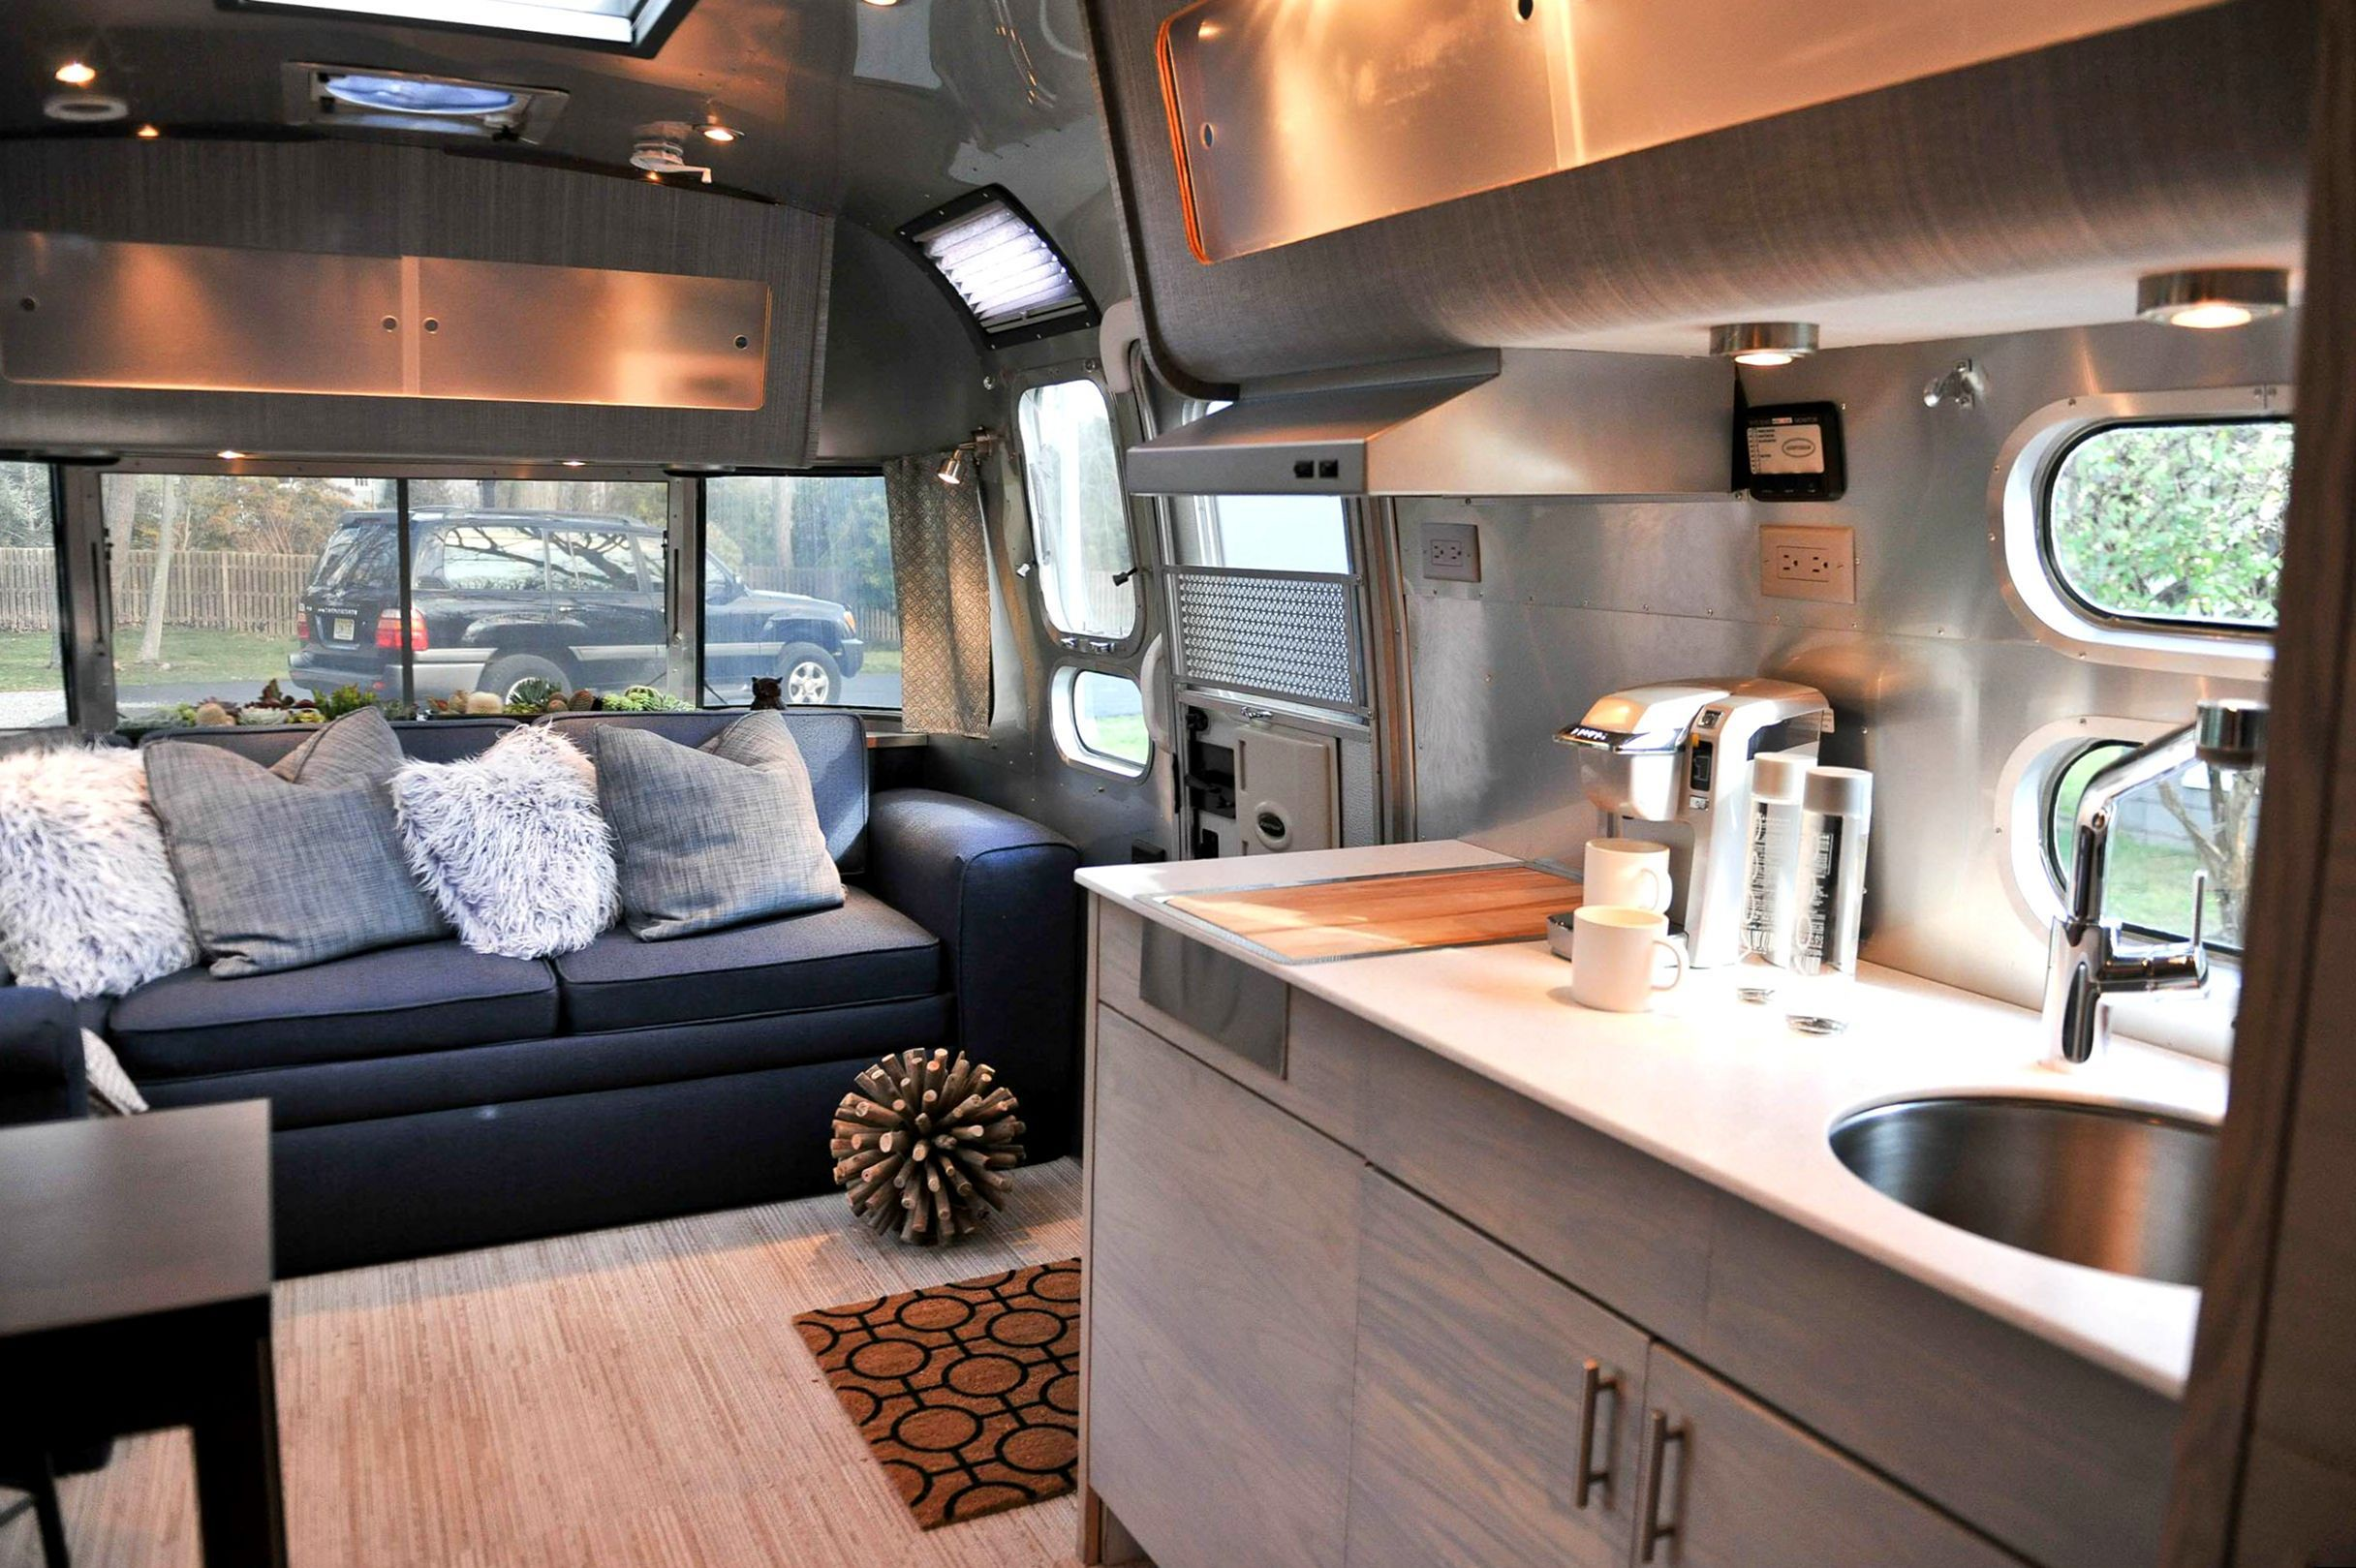 15 Best Rv Interior Design Ideas For Enjoy Your Vacation With